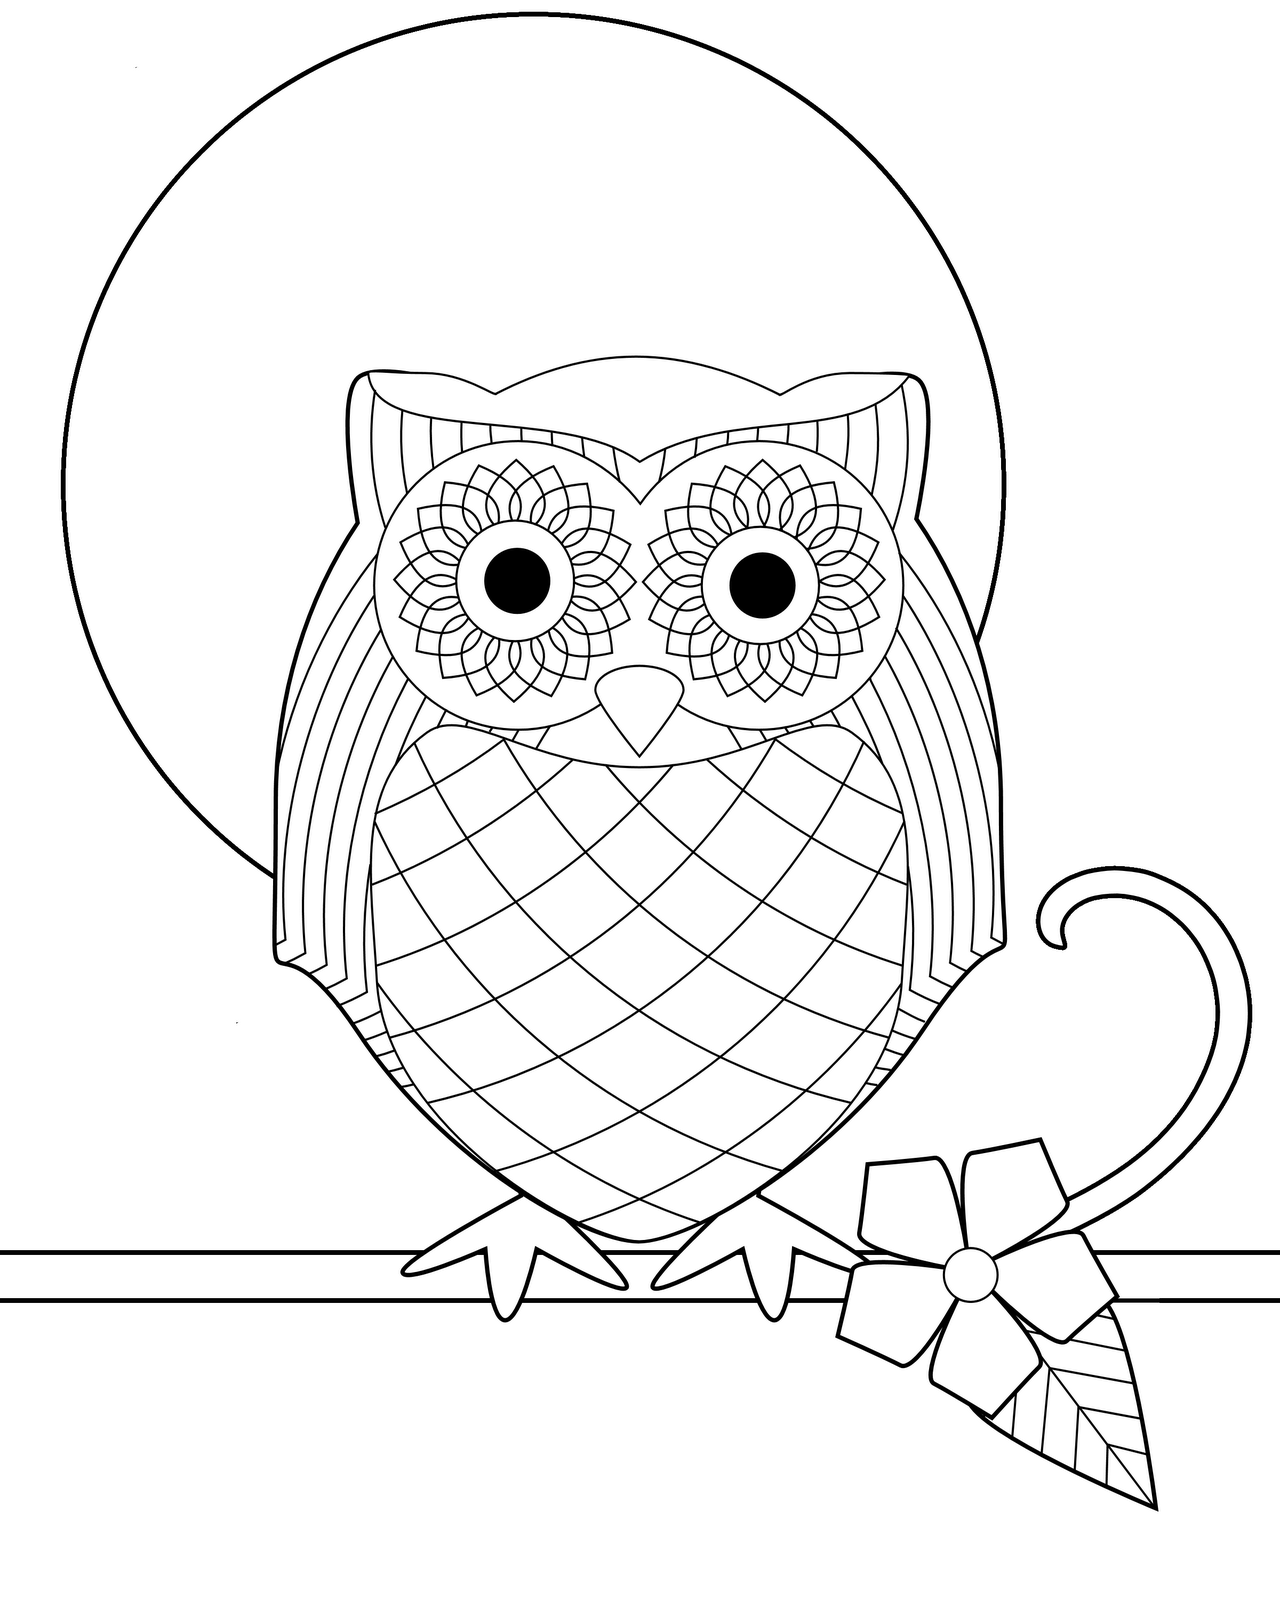 Owl Coloring Pages Glamorous Free Printable Owl Coloring Pages For Kids